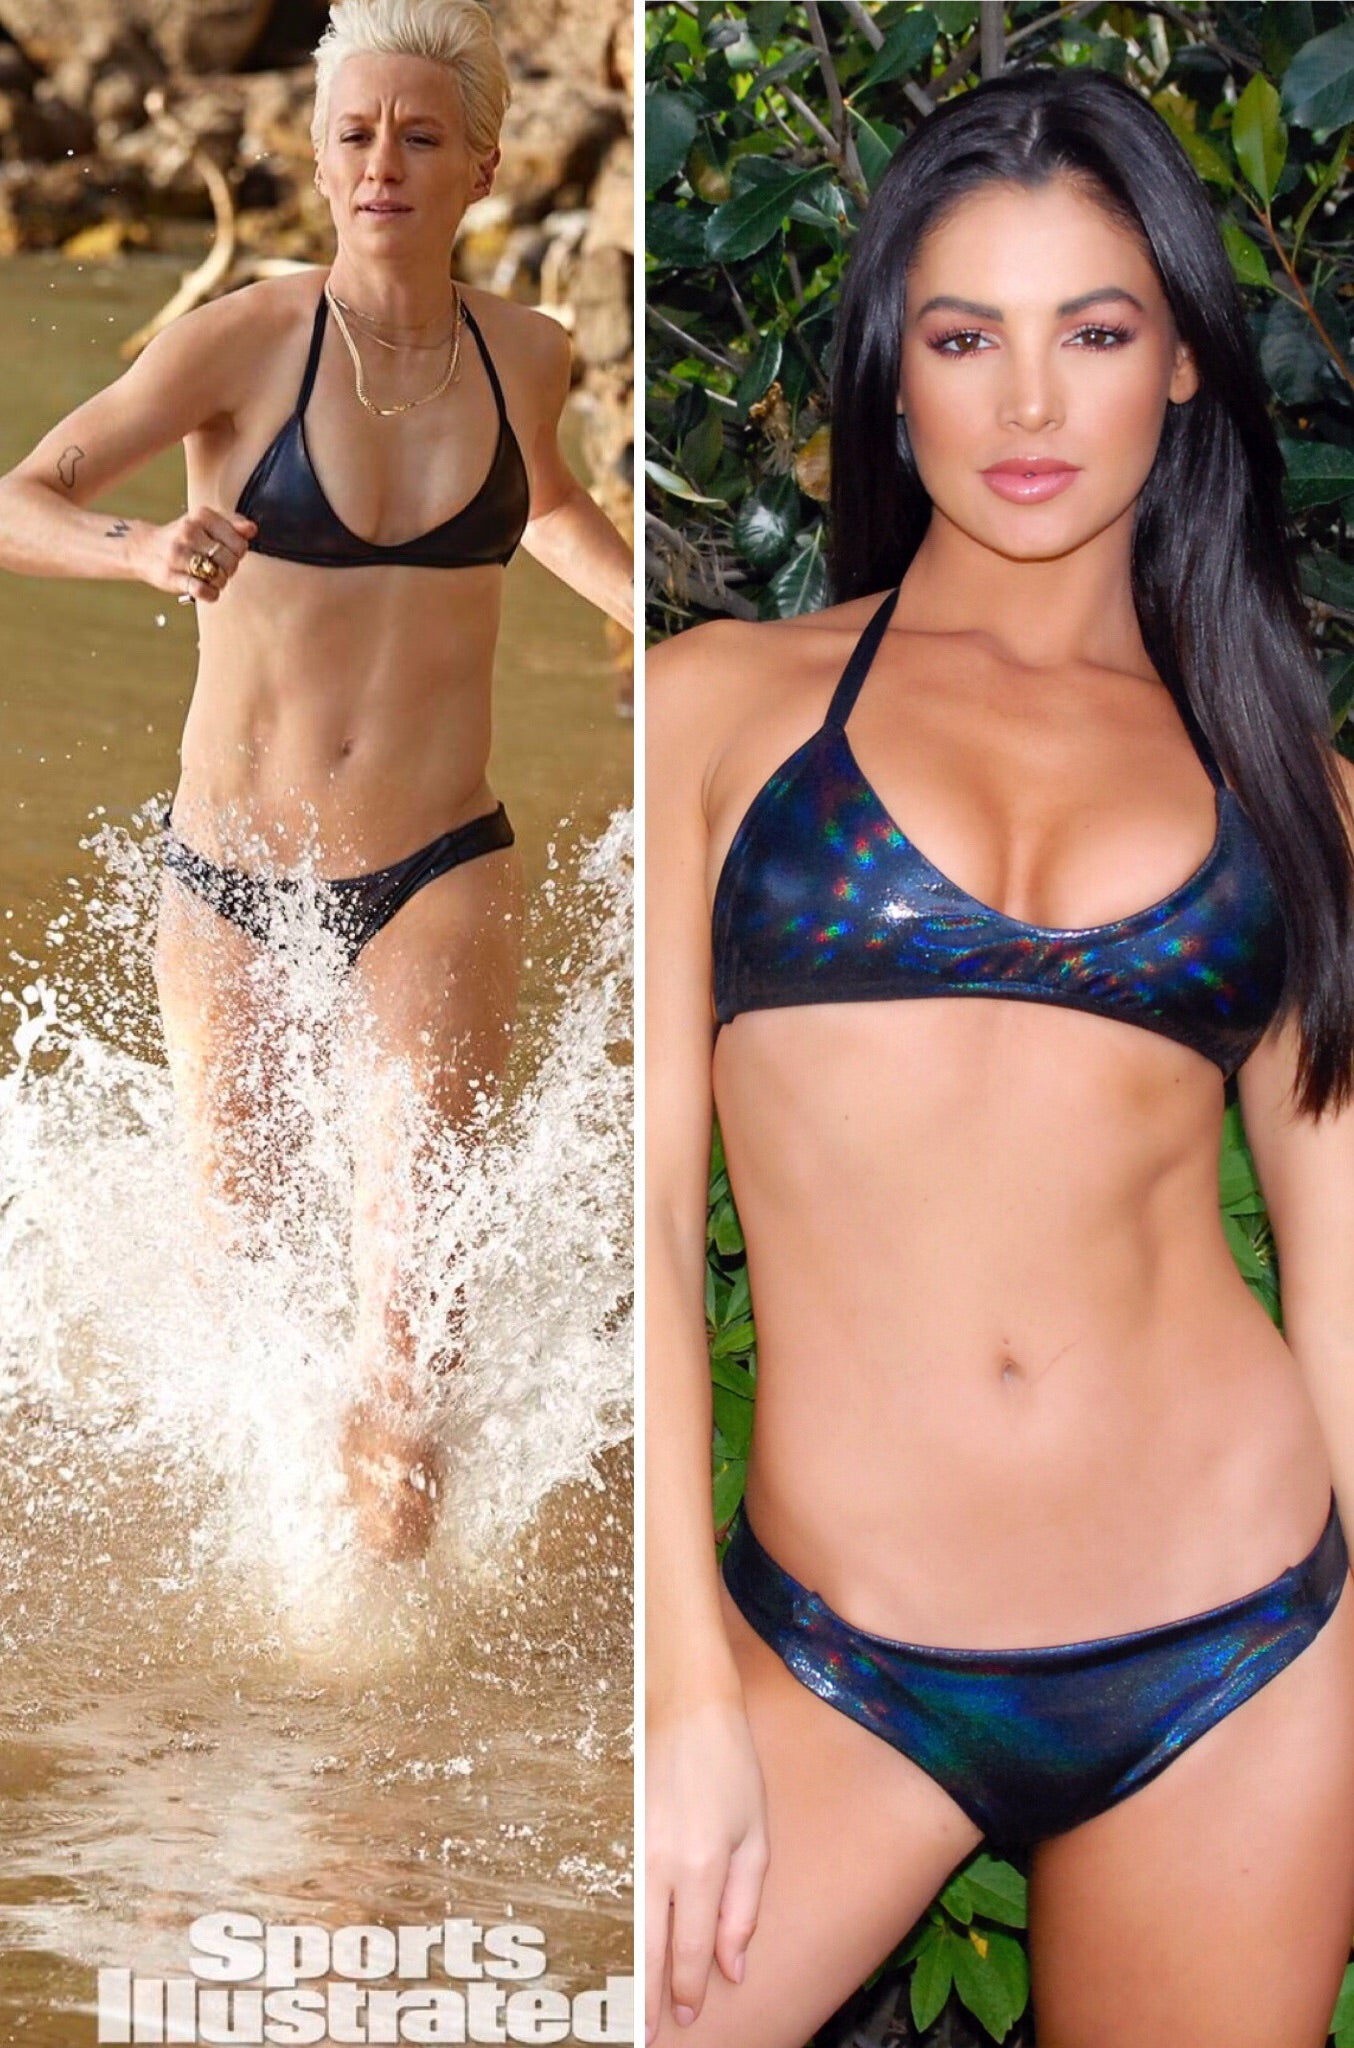 As seen on sports illustrated - Black Iridescent Swimsuit Set